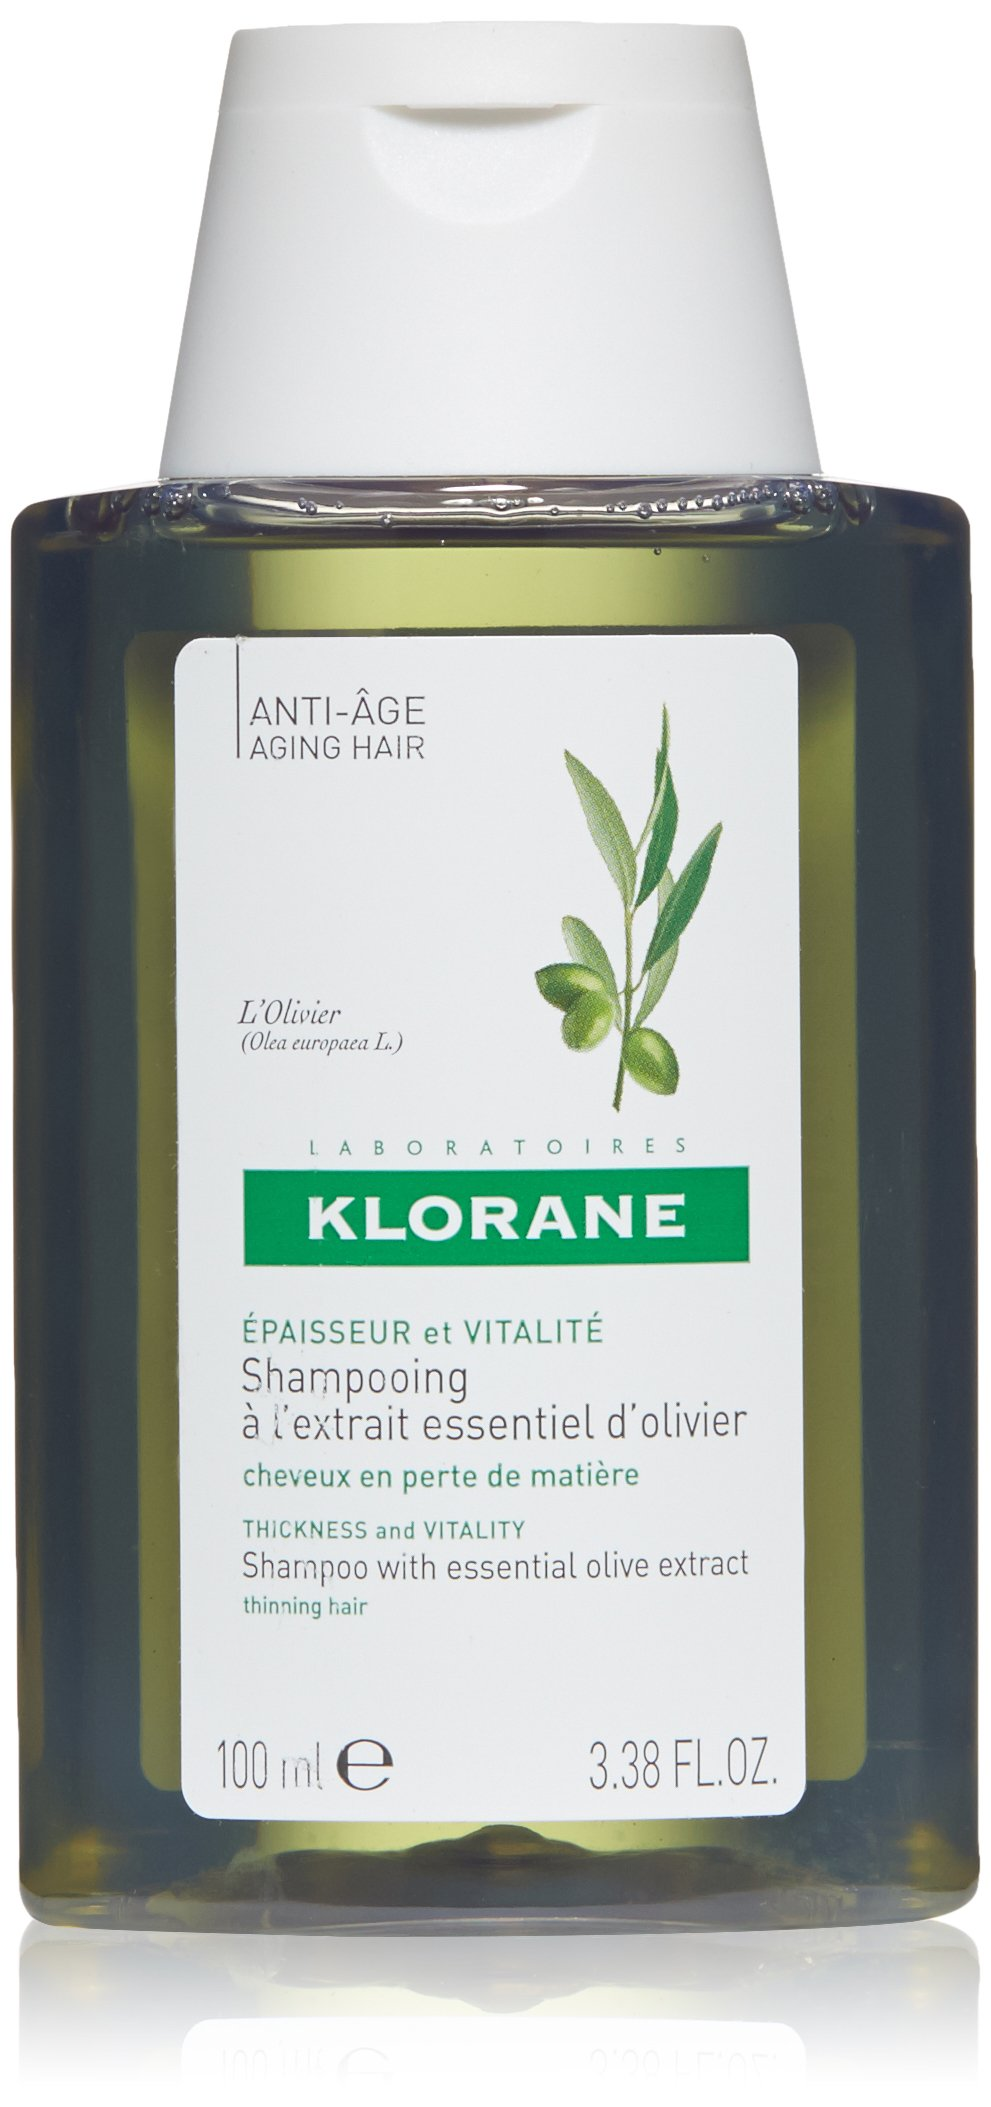 Klorane Shampoo with Essential Olive Extract - Aging Hair, 3.35 fl. oz.